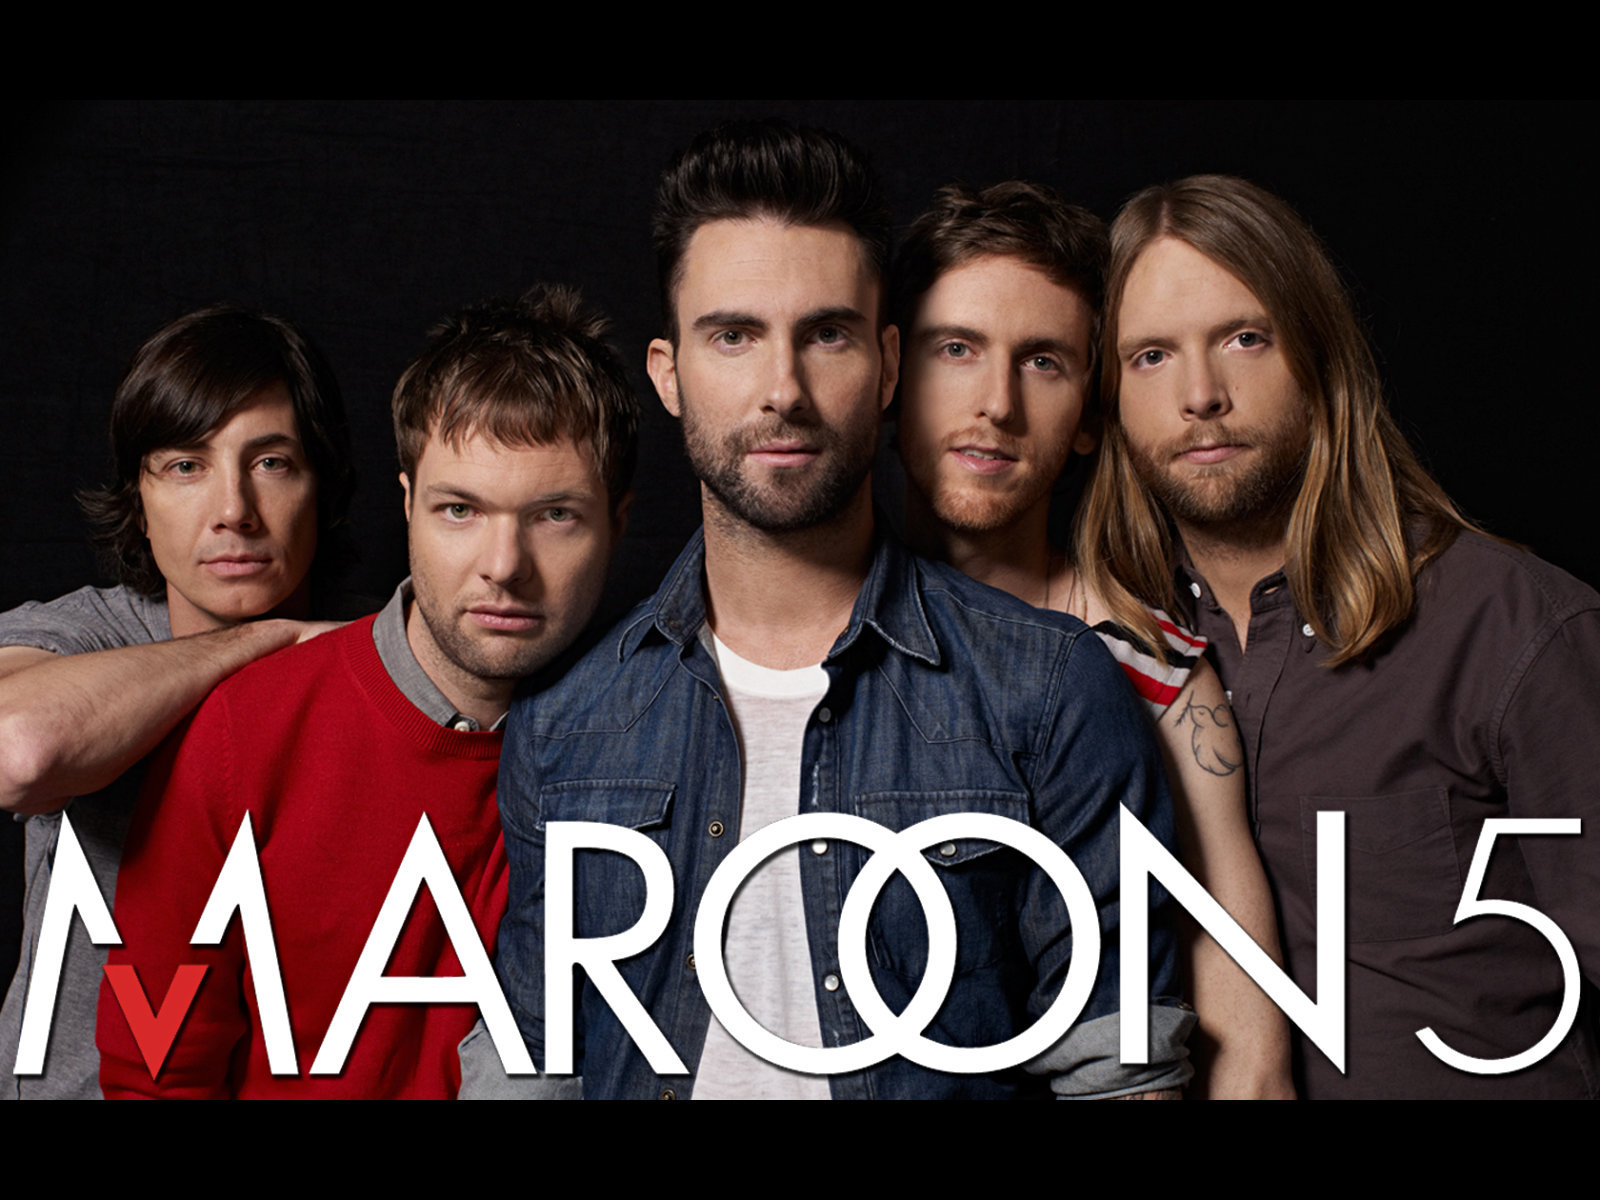 Maroon 5 for iphone Maroon 5 for android